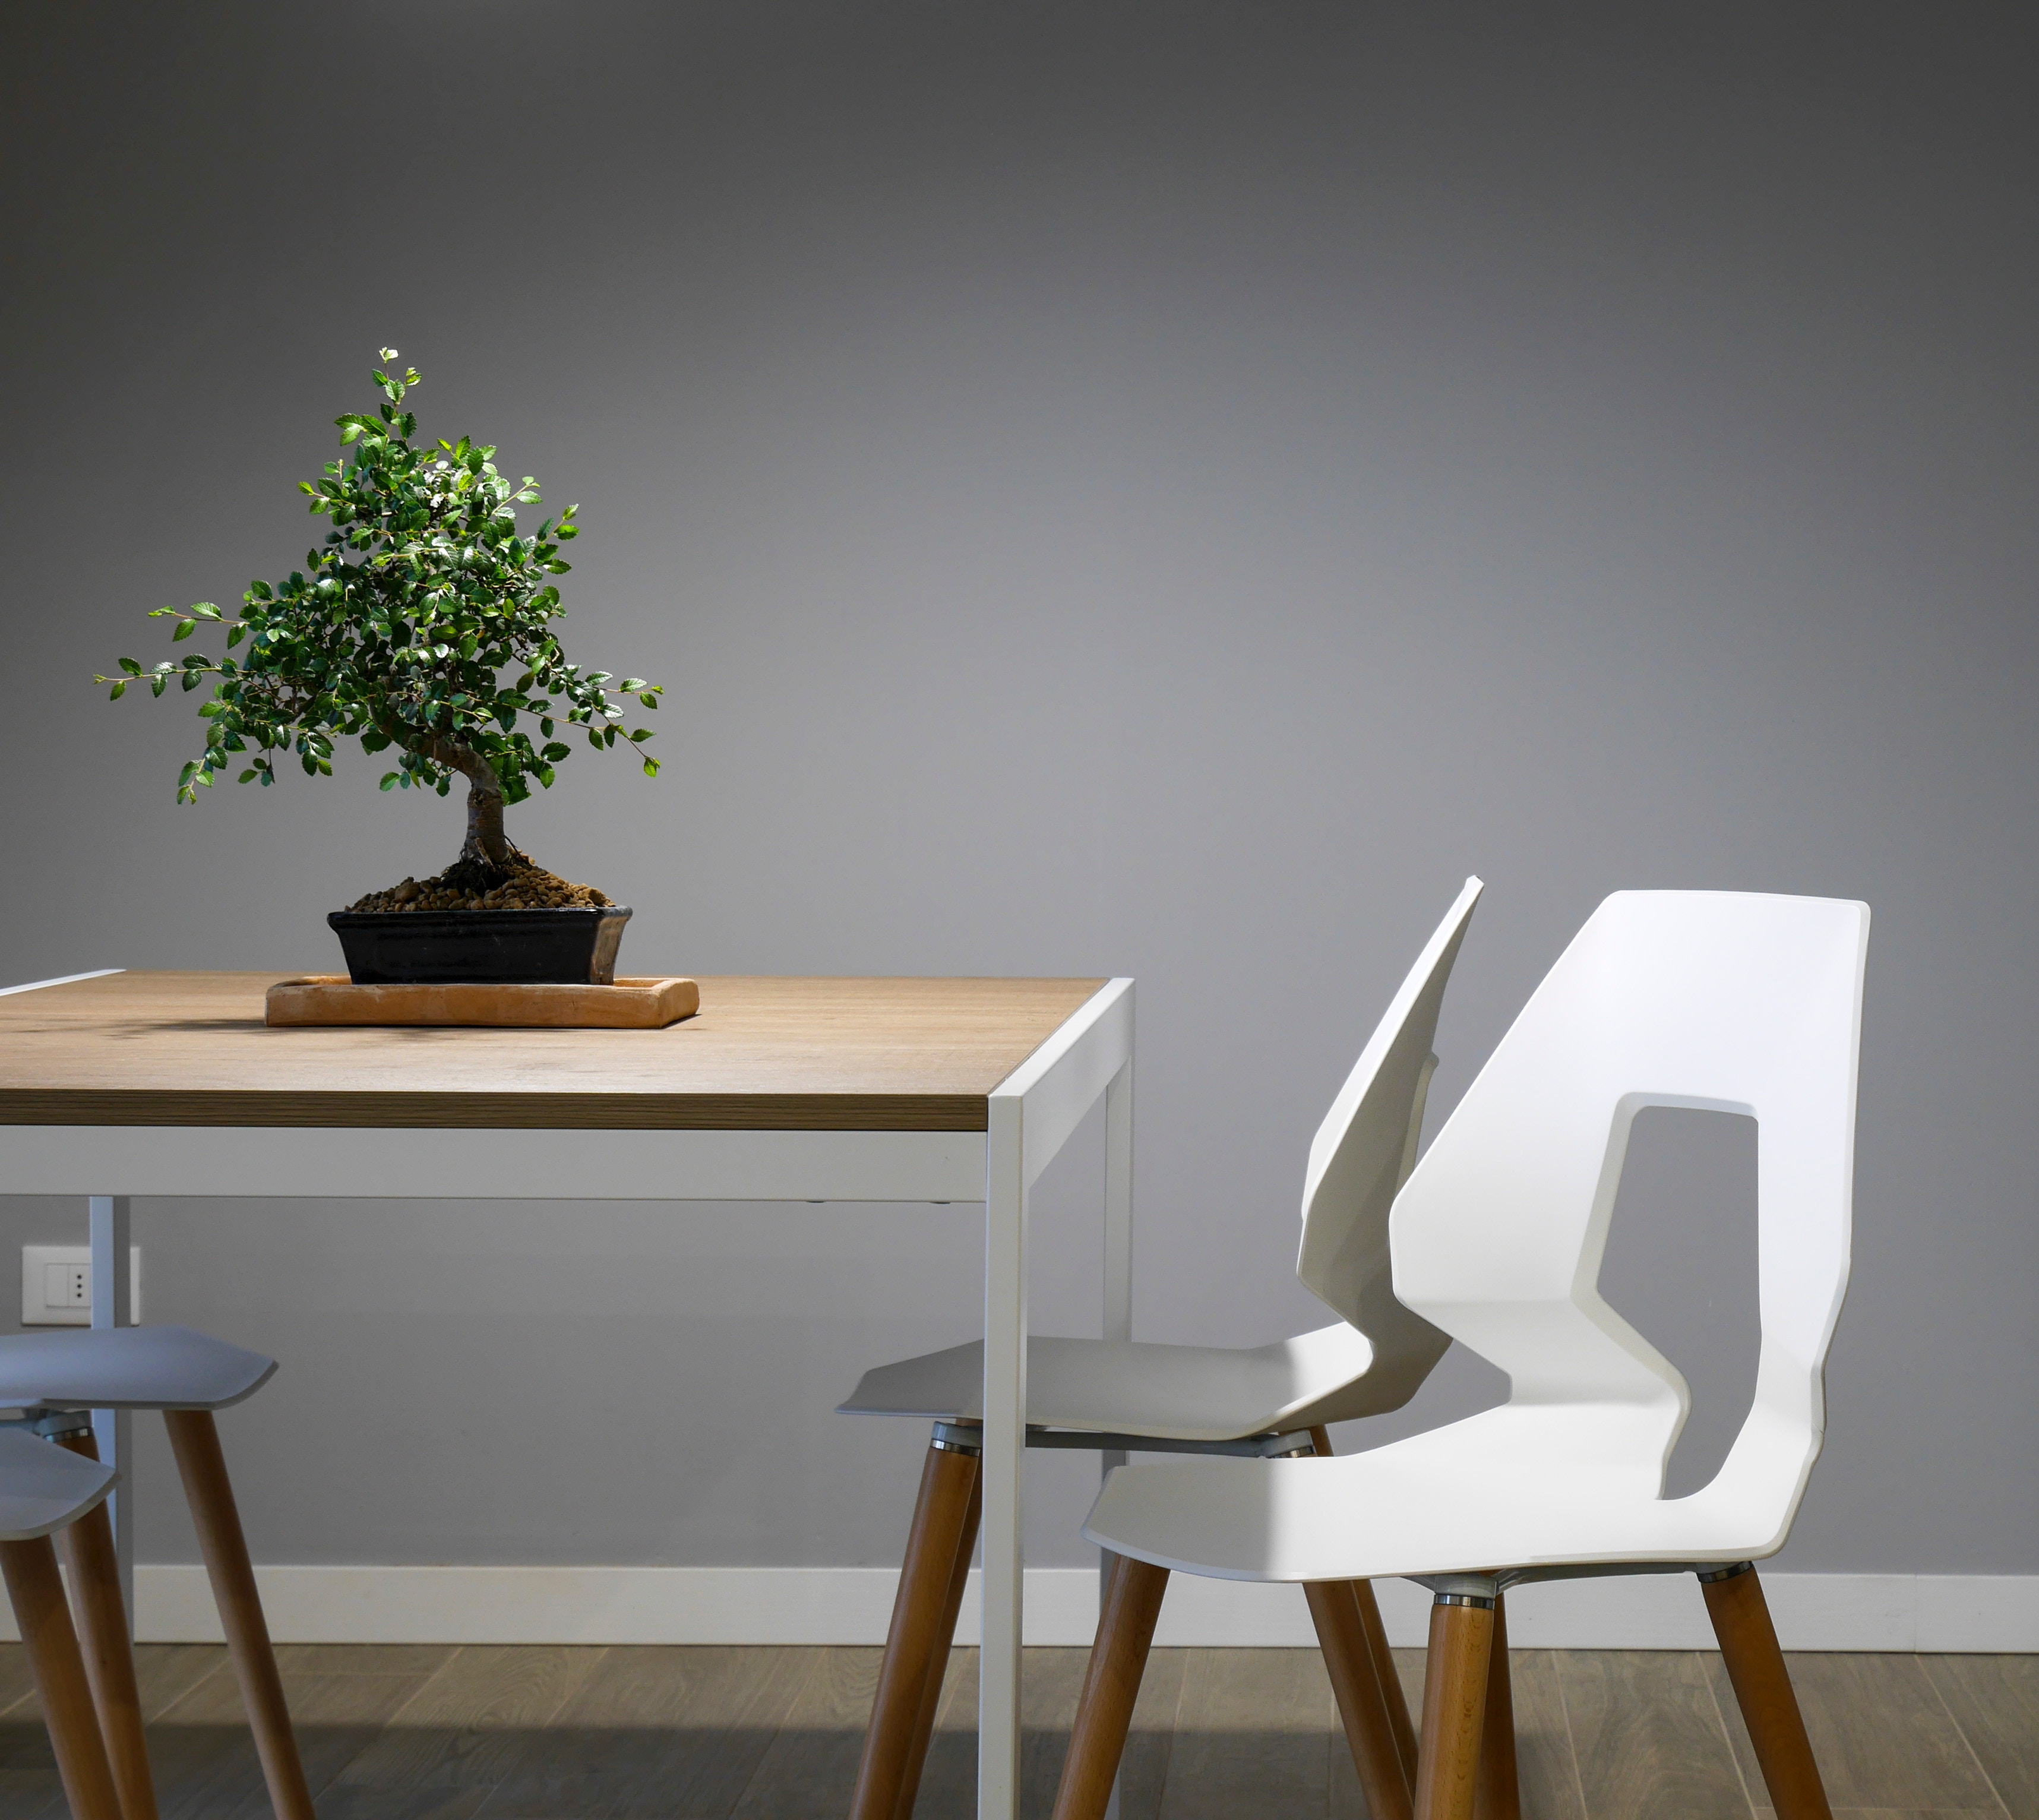 design of chairs and table